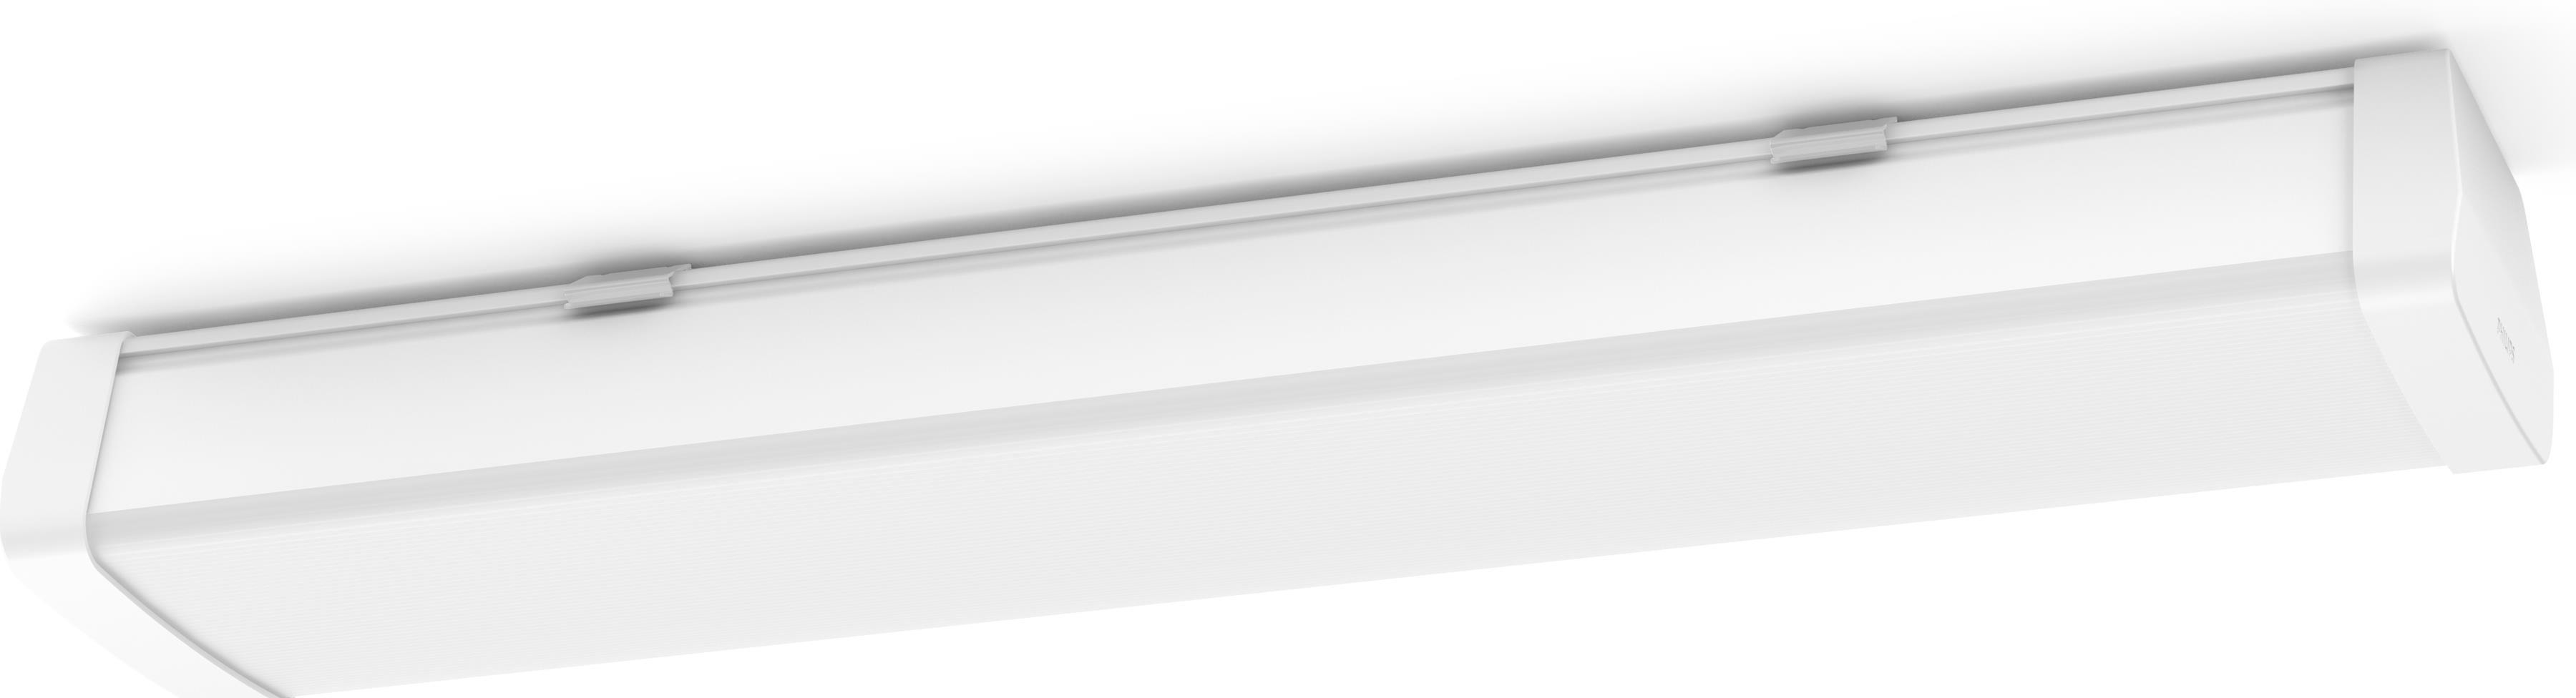 Philips Aqualine LED Linea plafondlamp